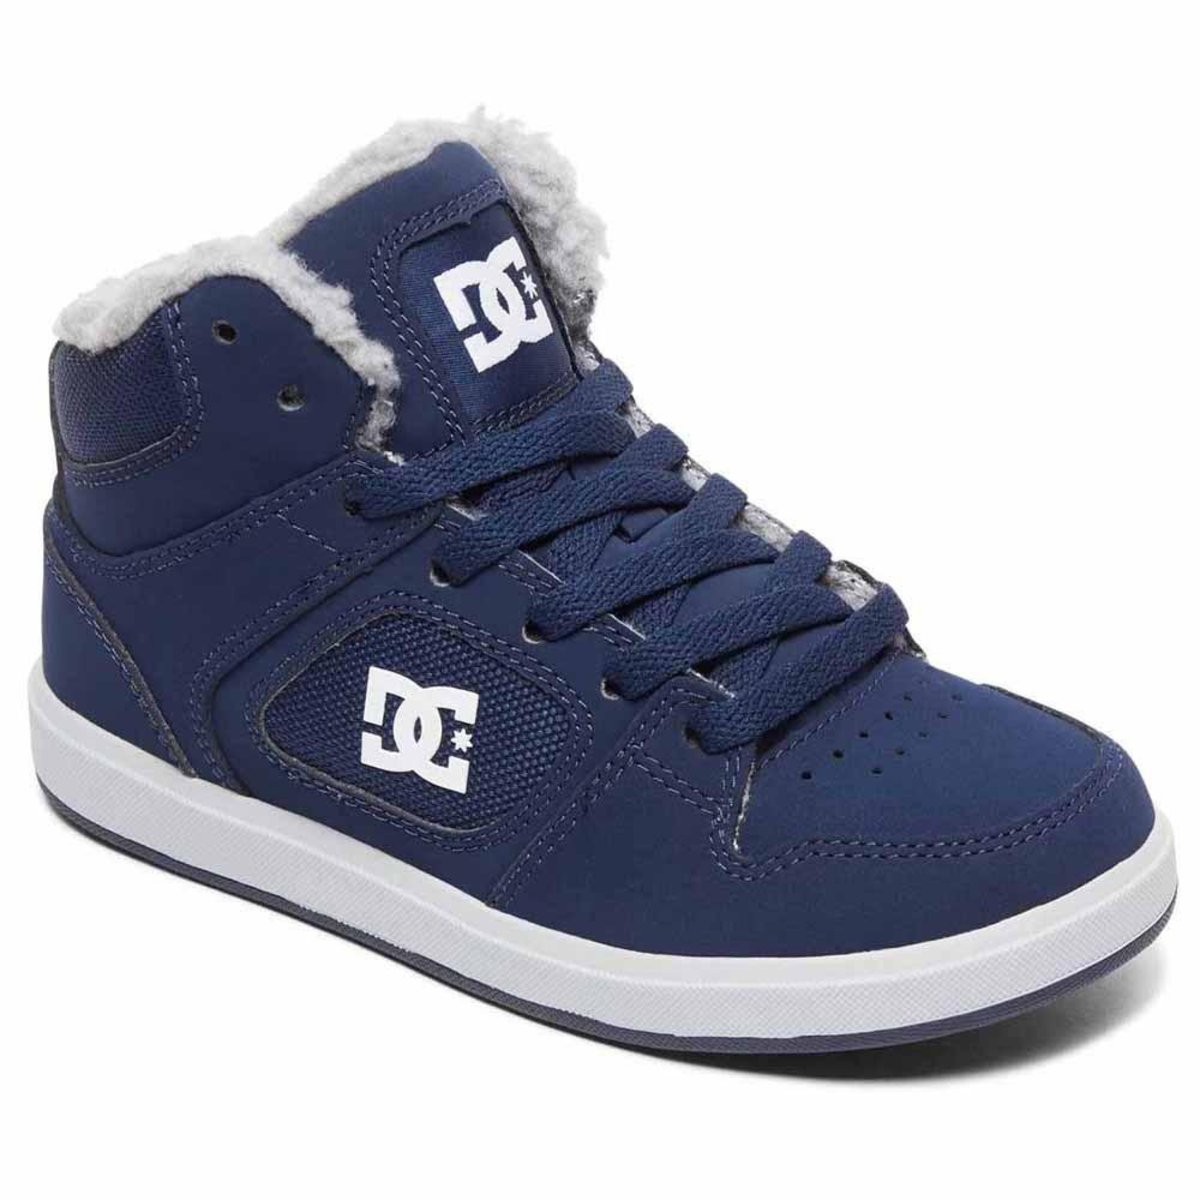 DC Schoes , model UNION GIGHT -ADBS100235 . 42 pary